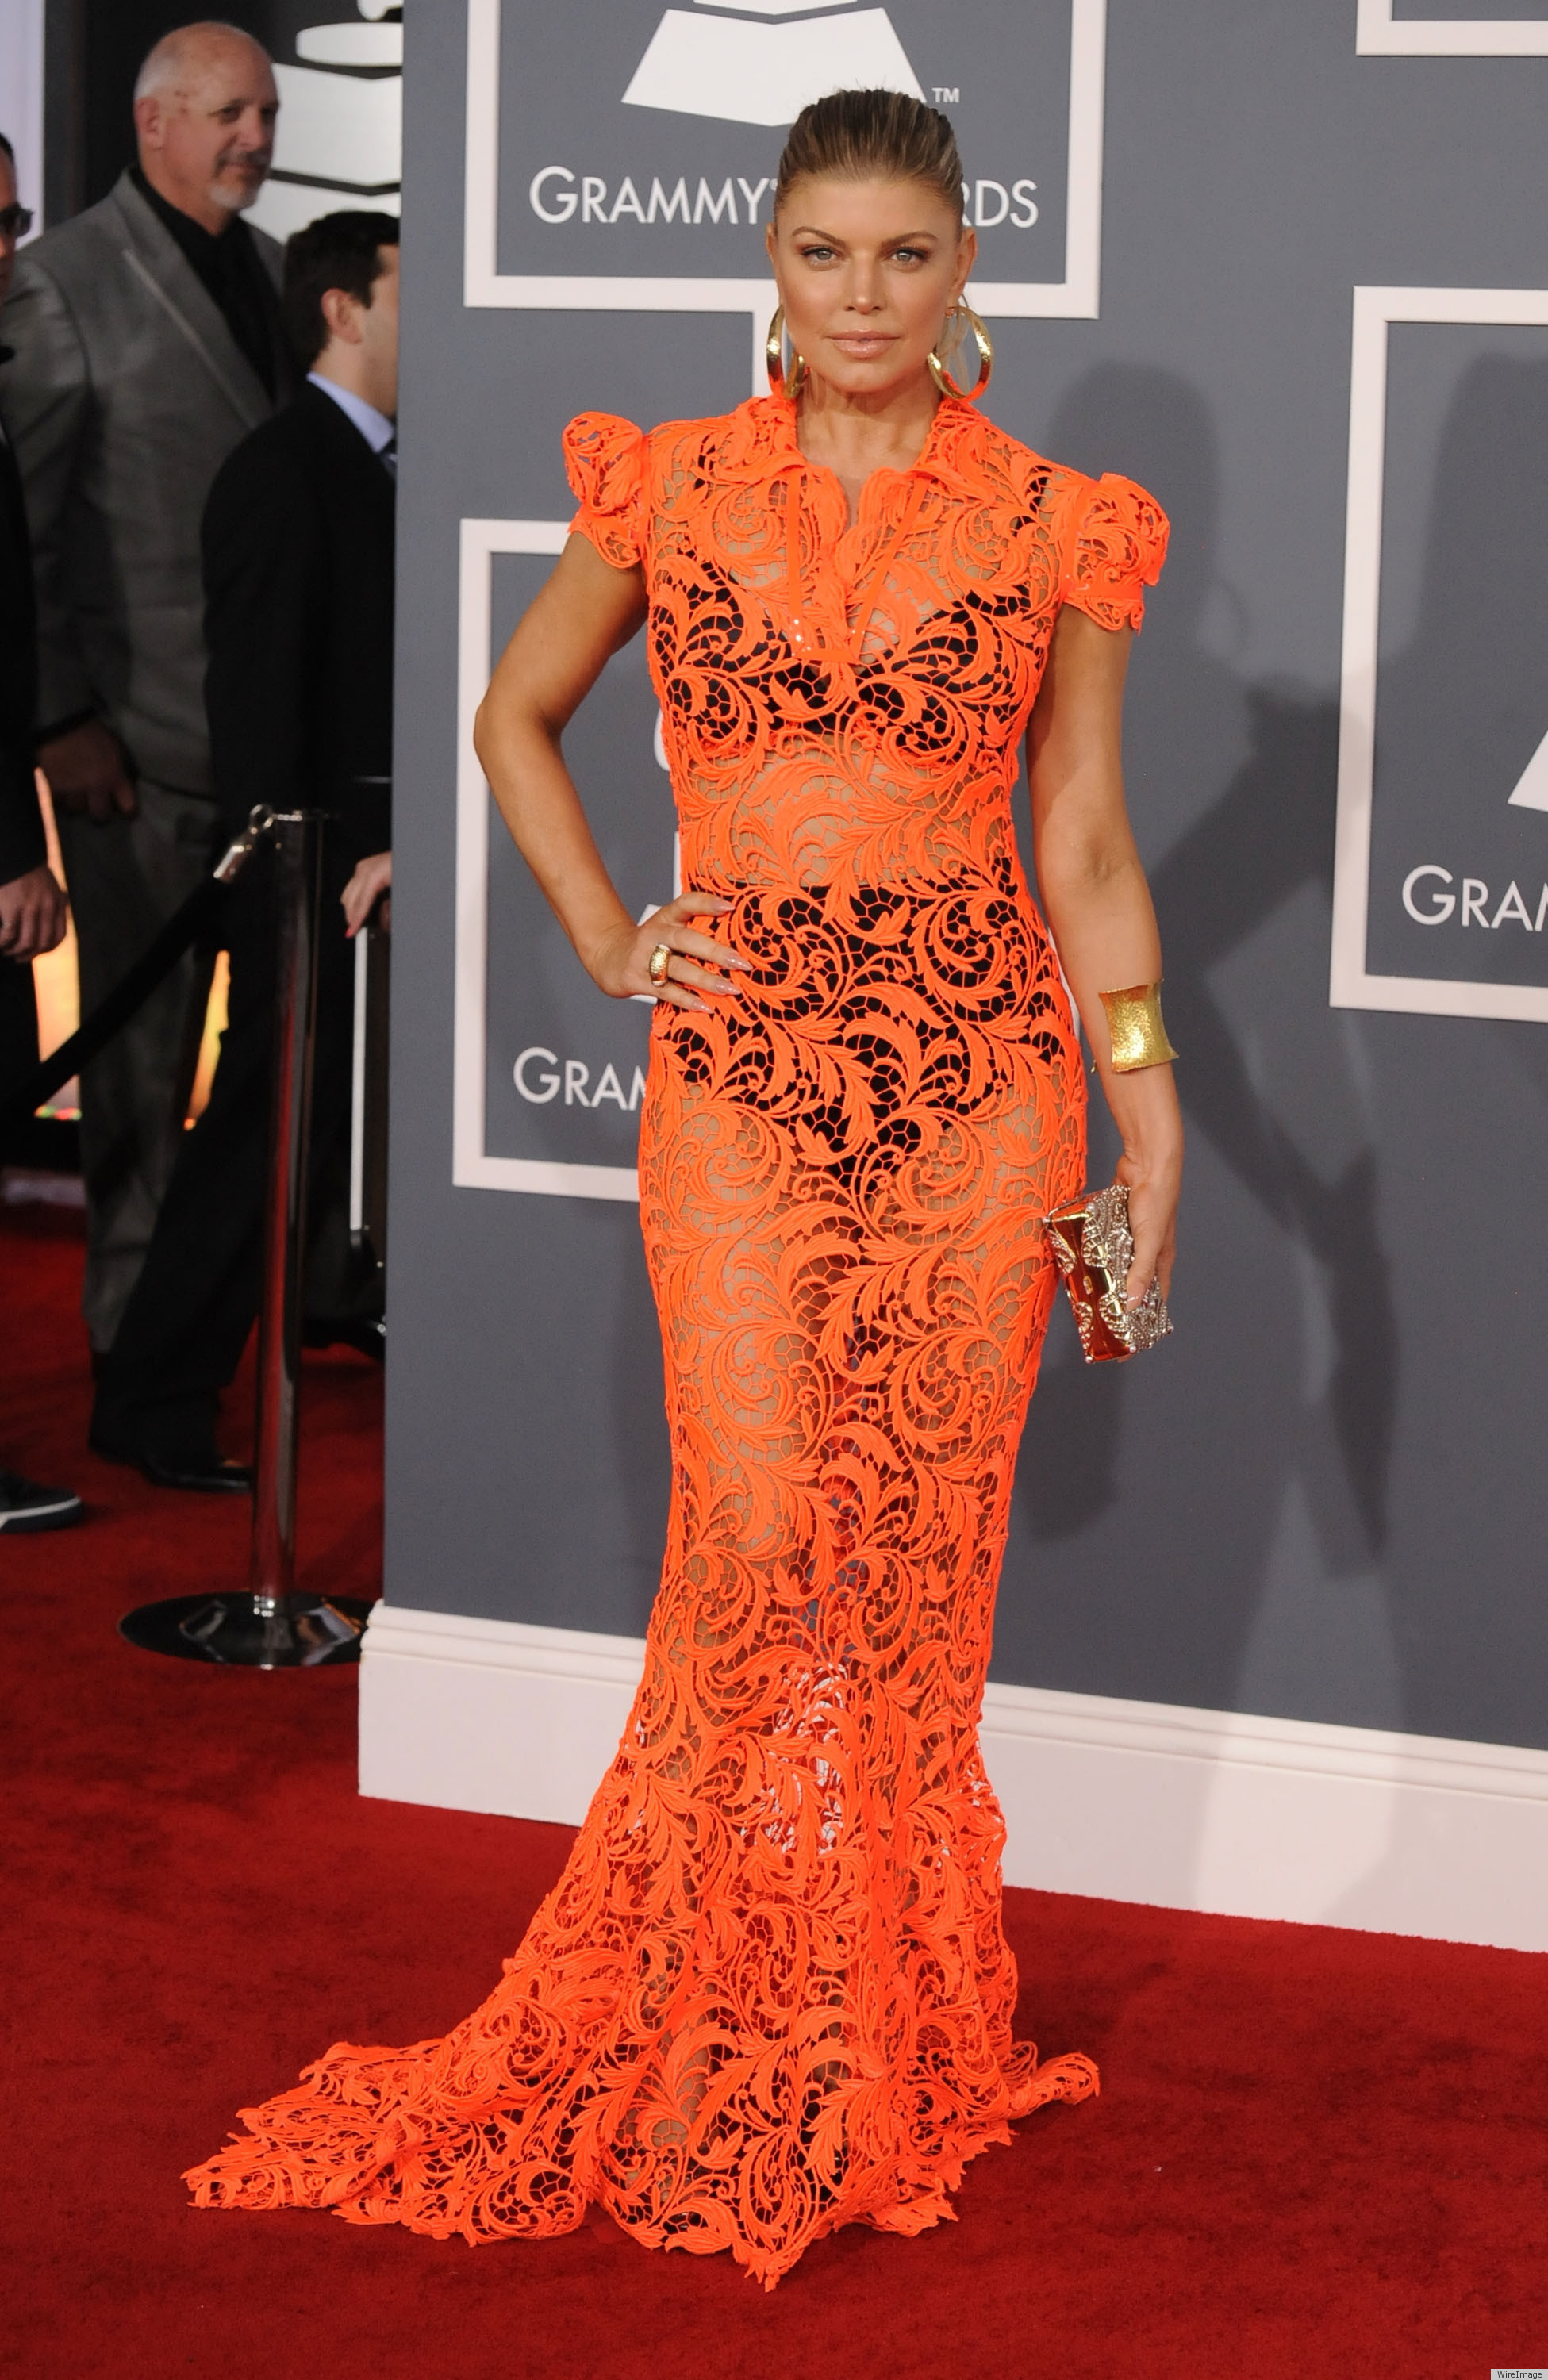 fergie grammys 2012 red carpet dress fab or fug photos